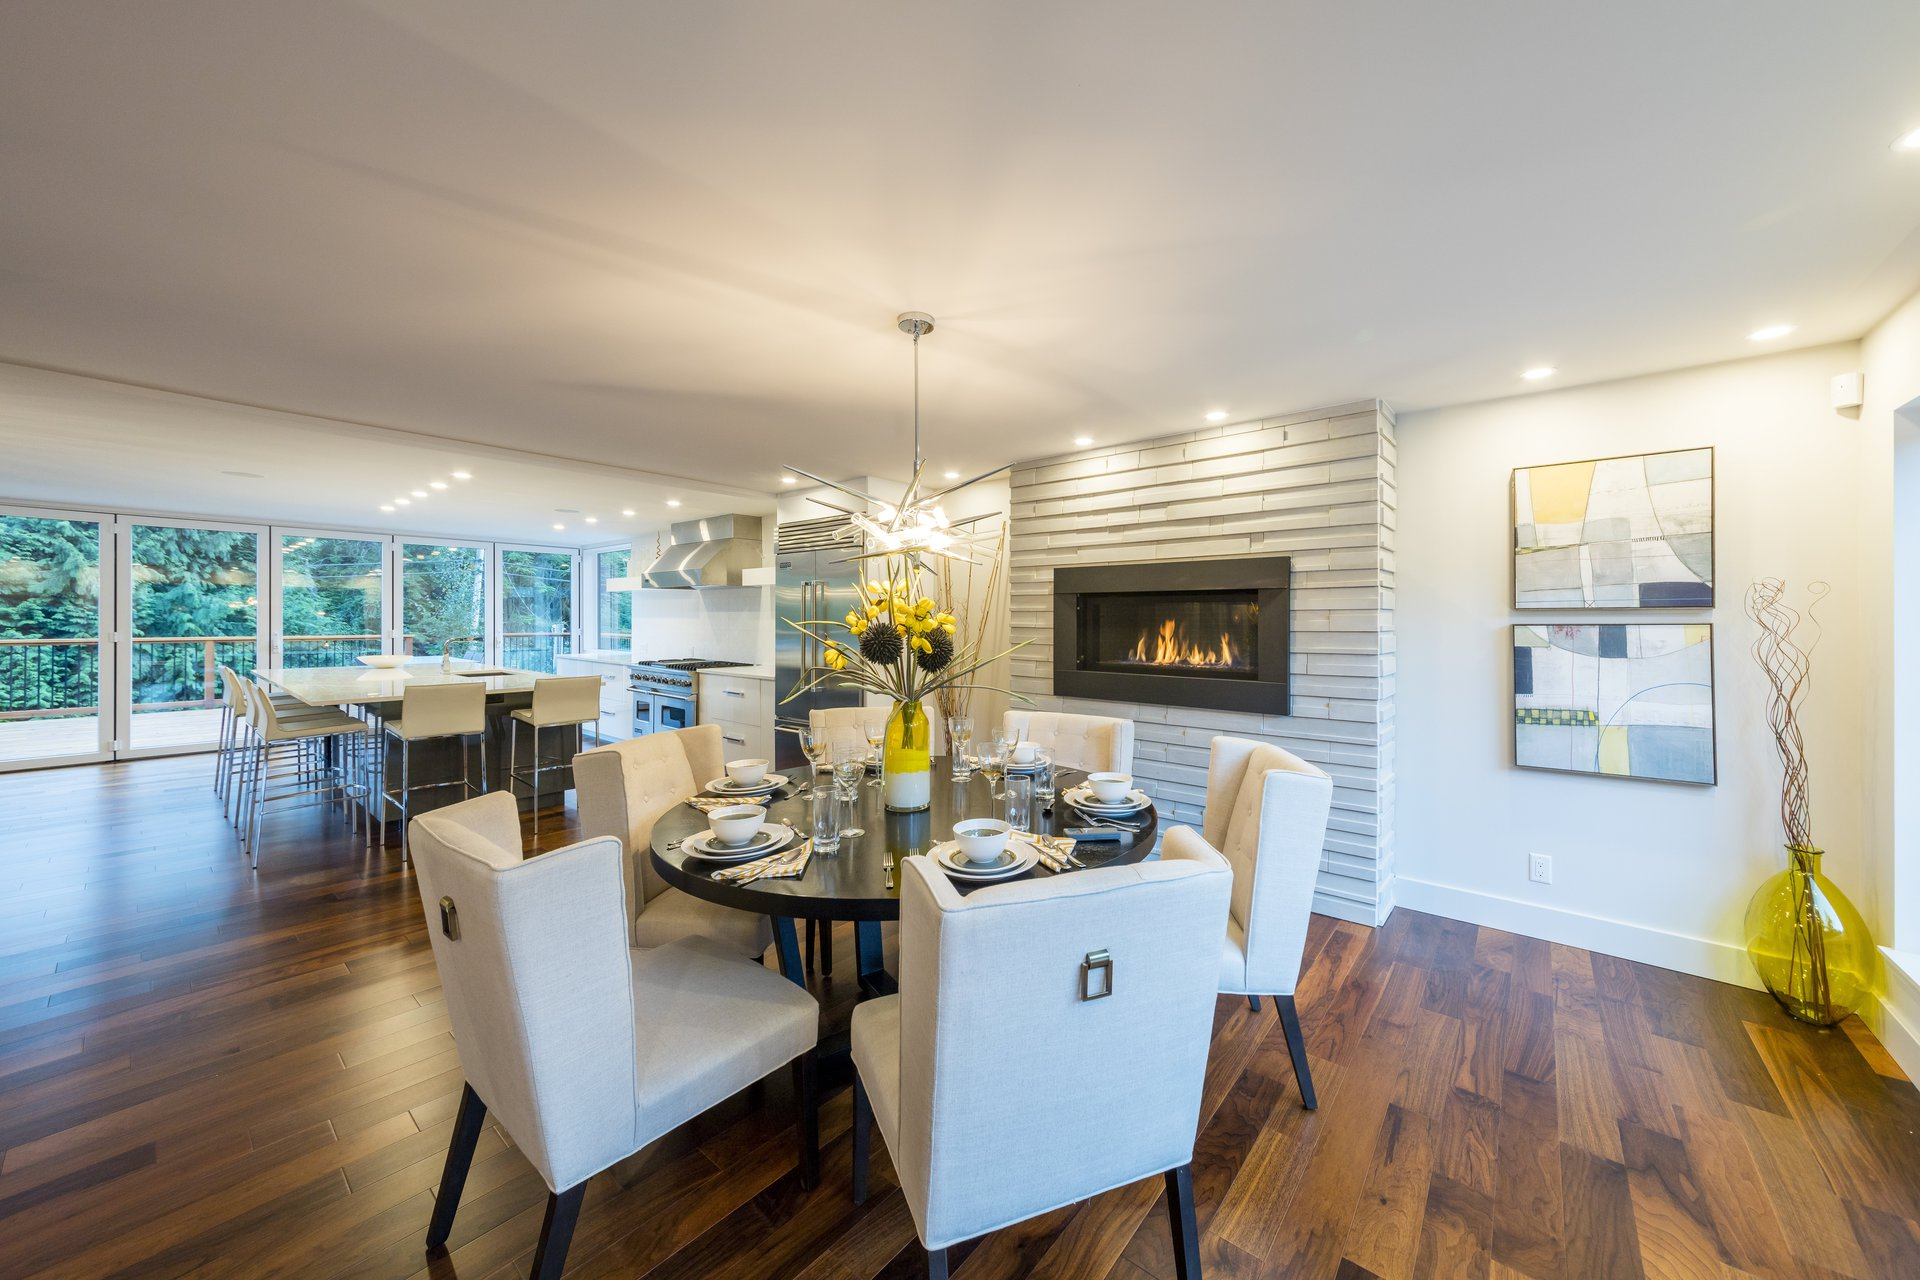 West Vancouver Kitchen Renovation Contracting Work Renovations Interior Design